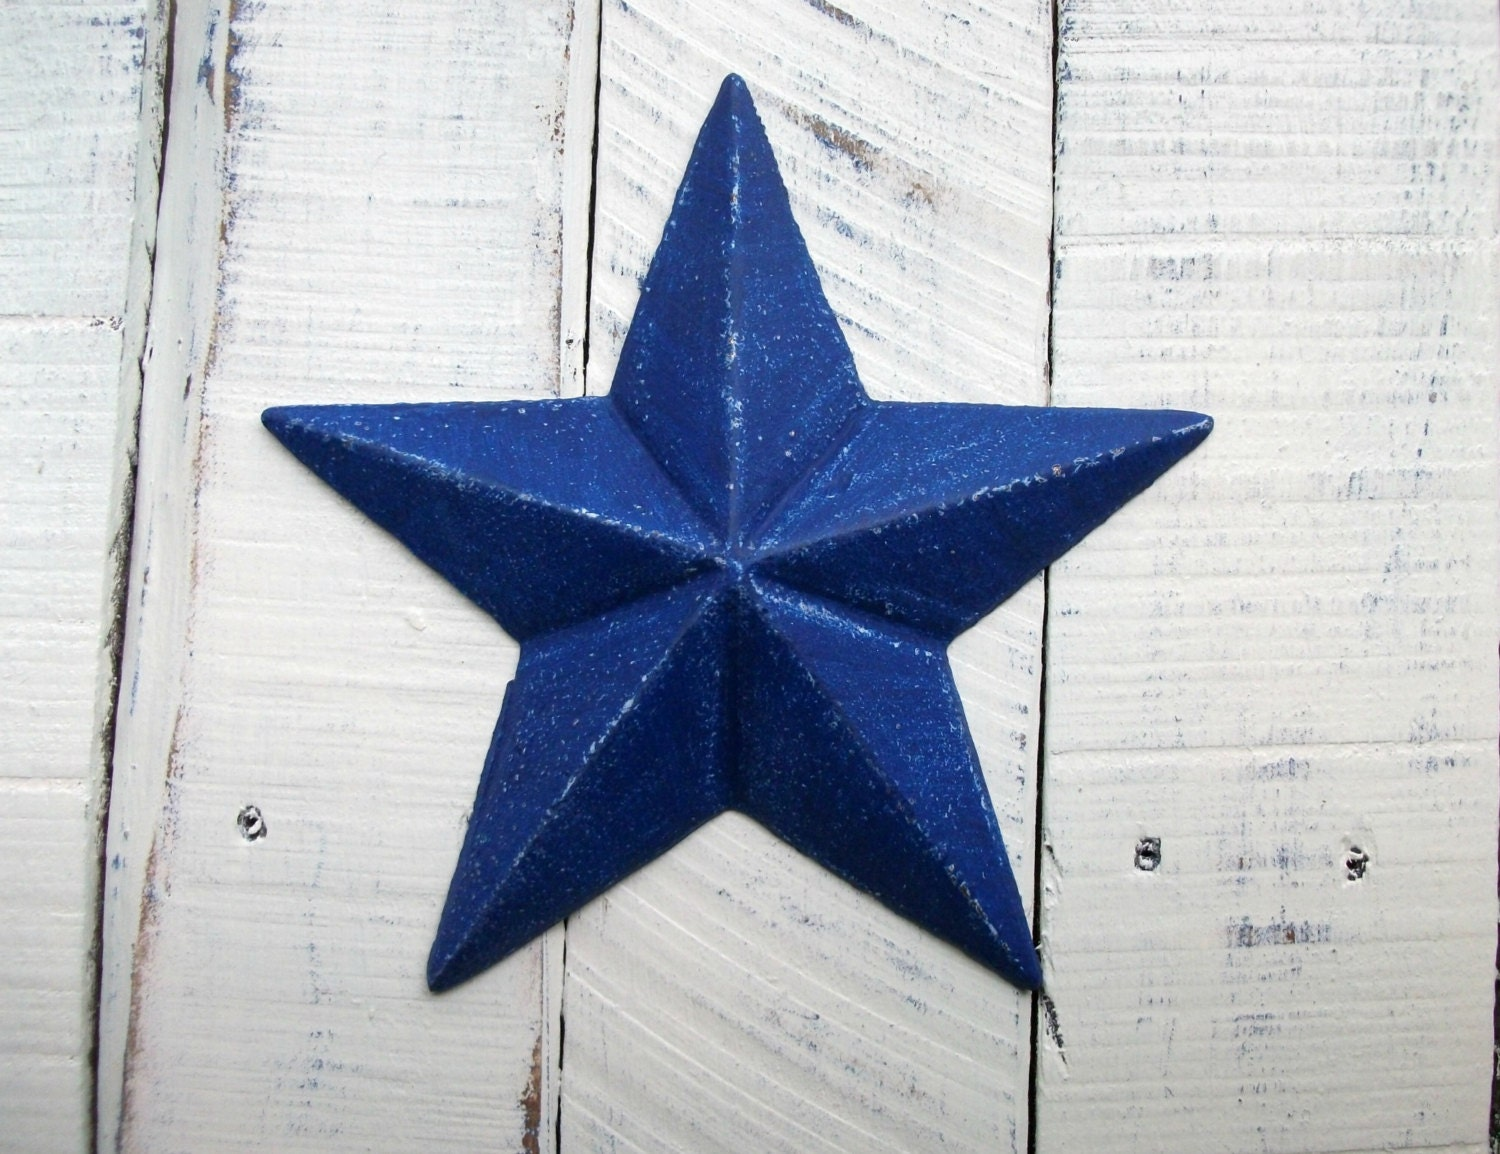 Blue Star Wall Decor : Navy blue cast iron star wall decor patriotic indoor outdoor